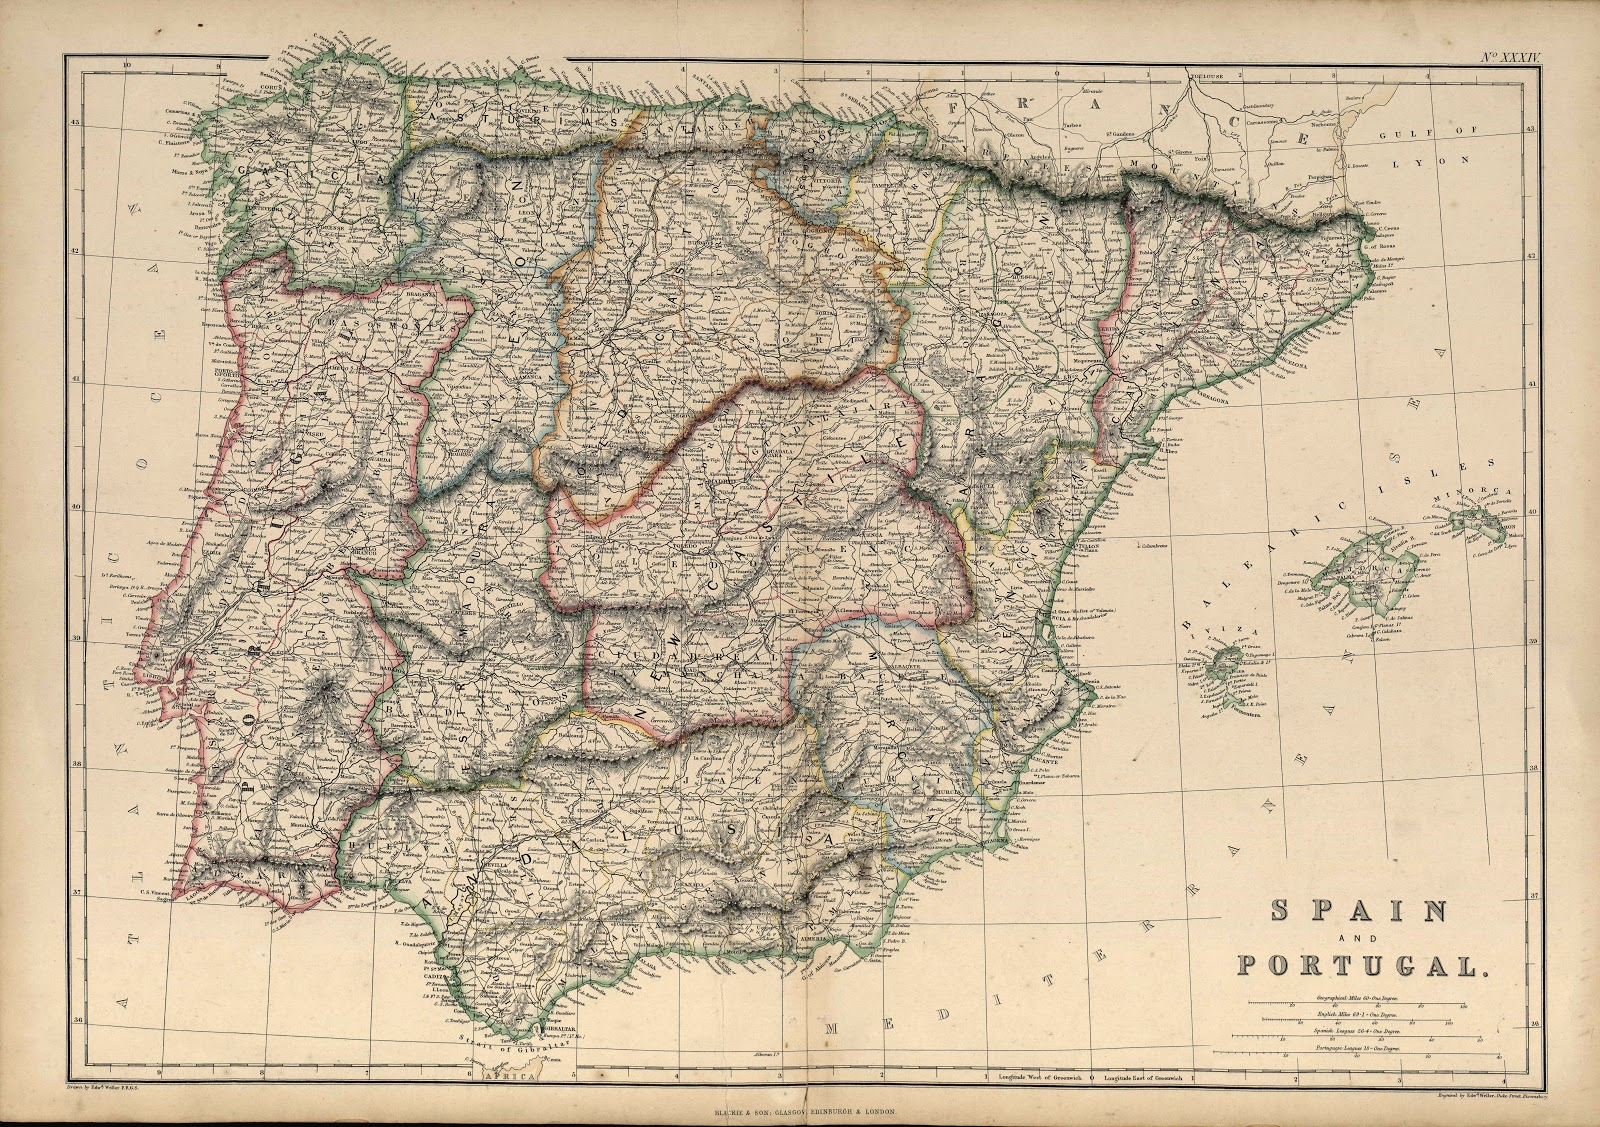 España y Portugal 1860-1893 Edward Weller